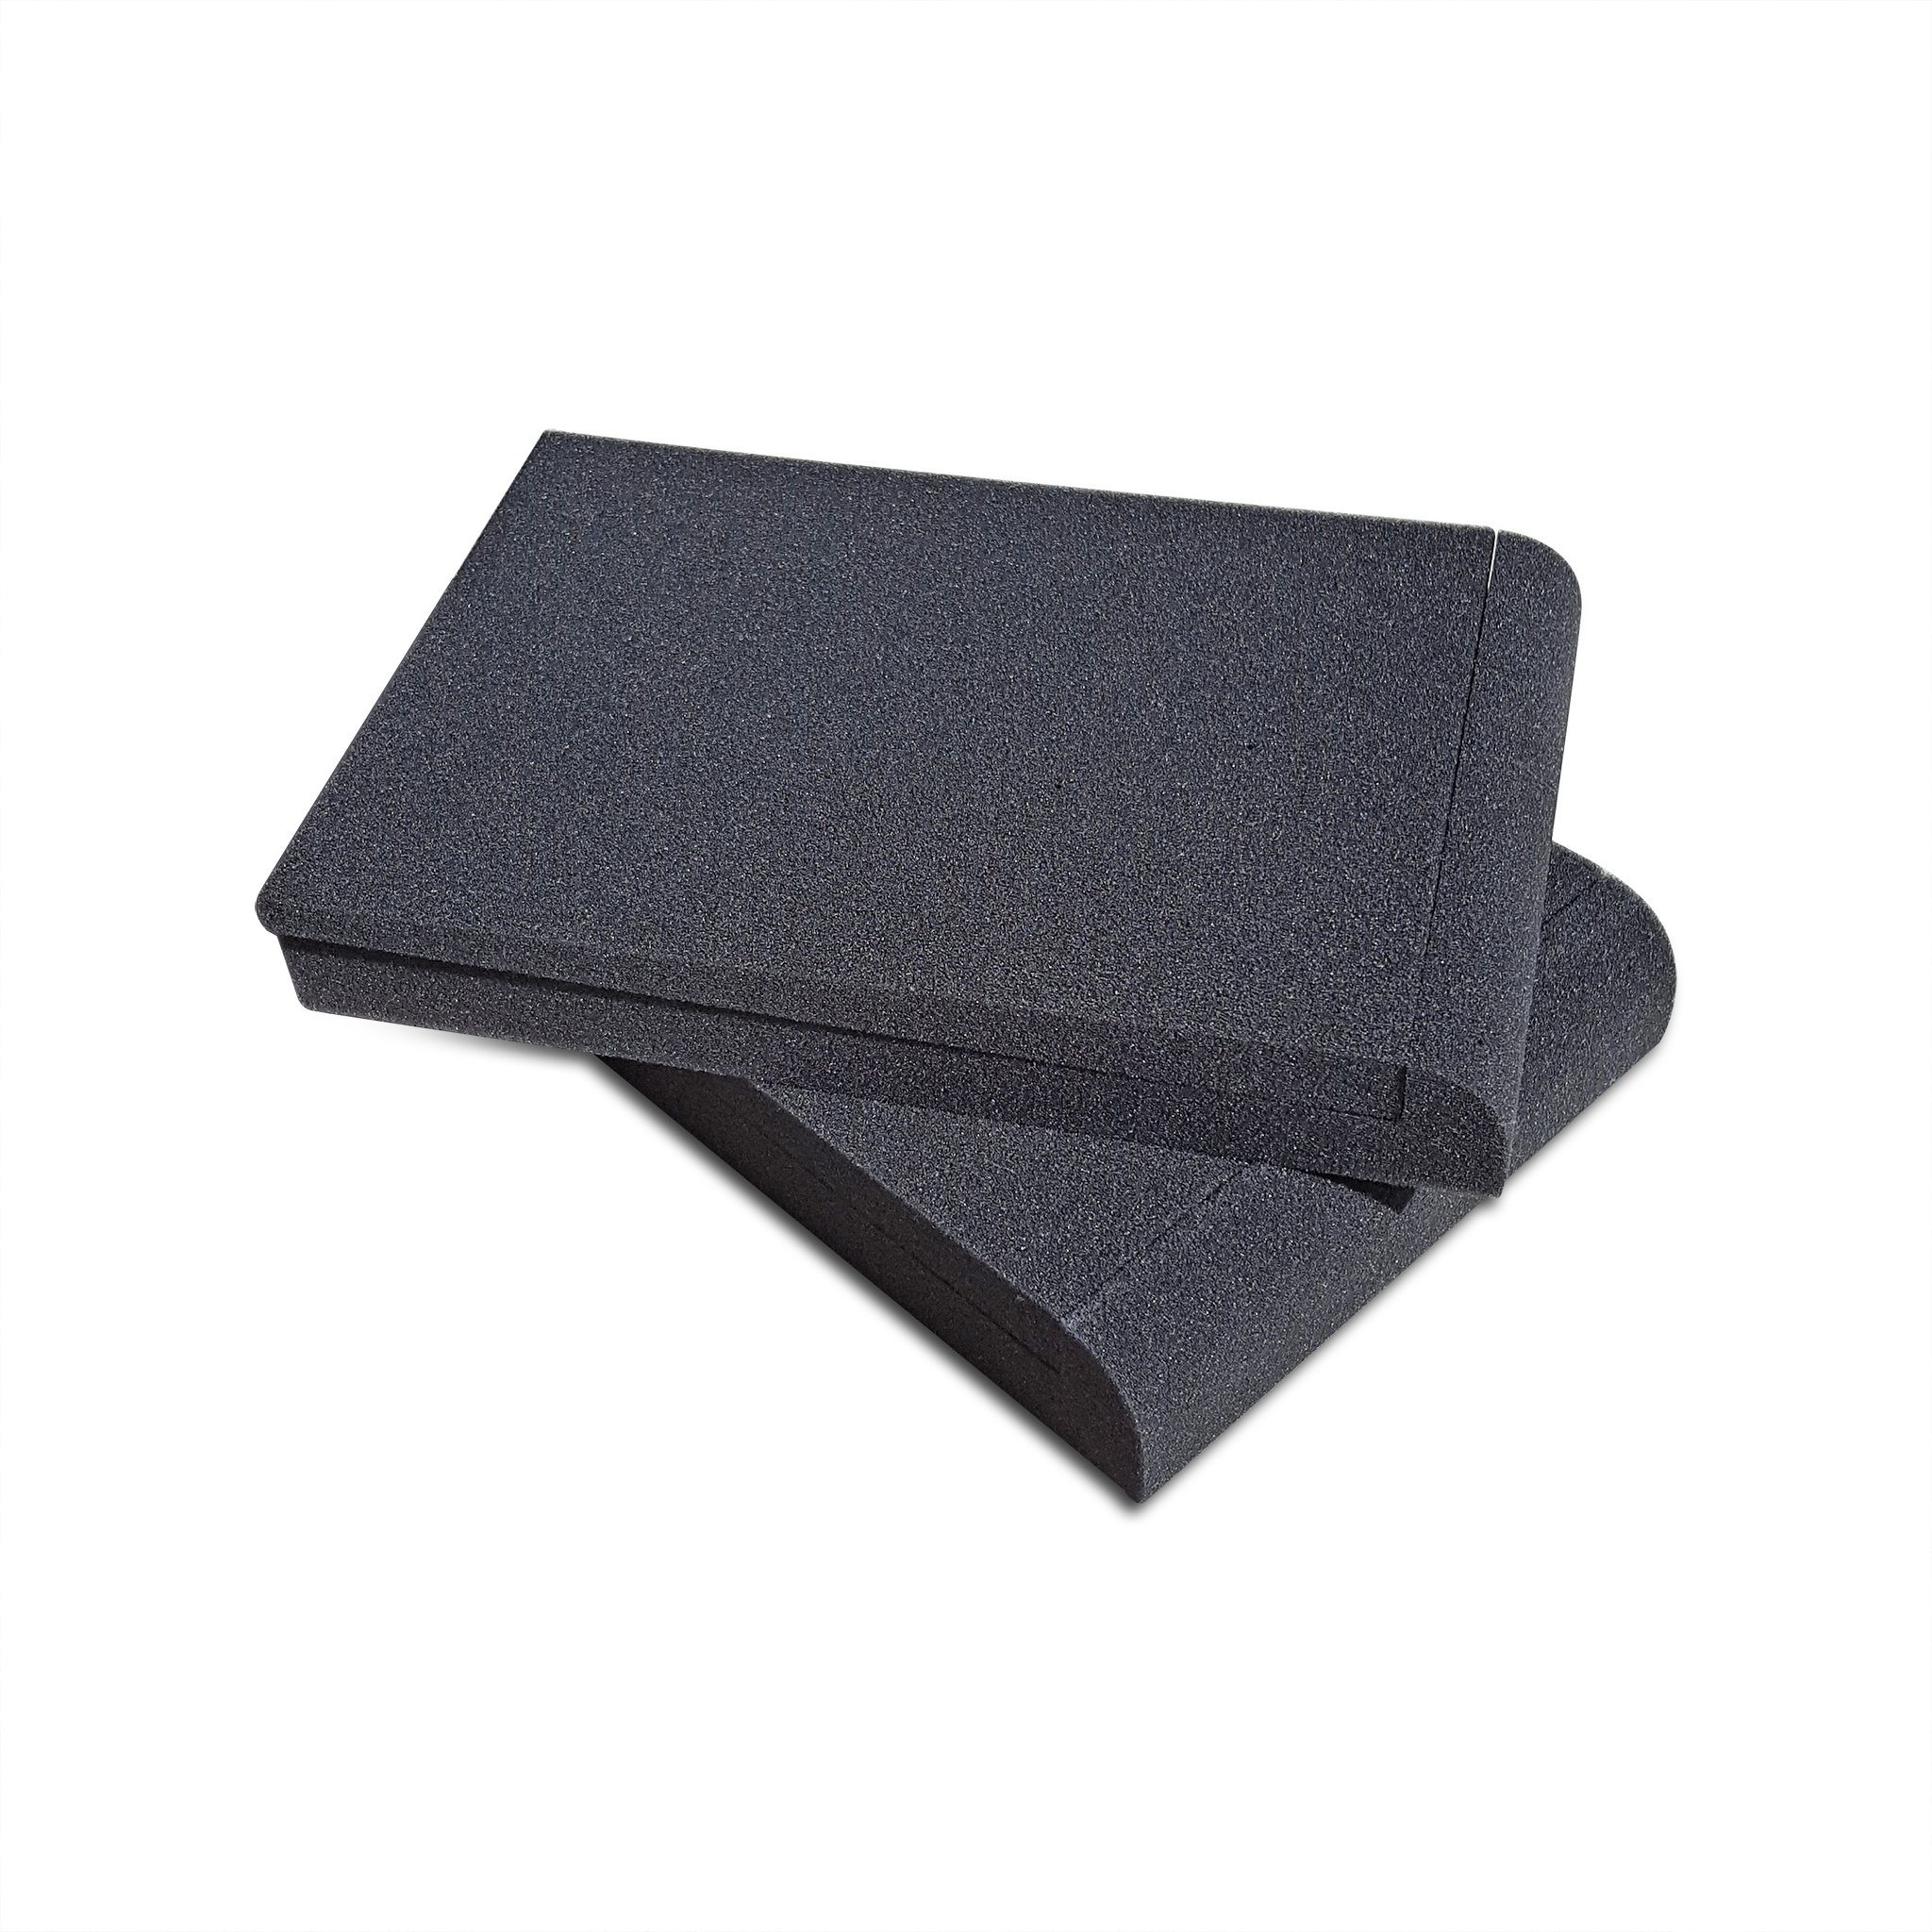 Studio Solutions High Density Studio Monitor Isolation Pads Pair For 8 Inch Monitors